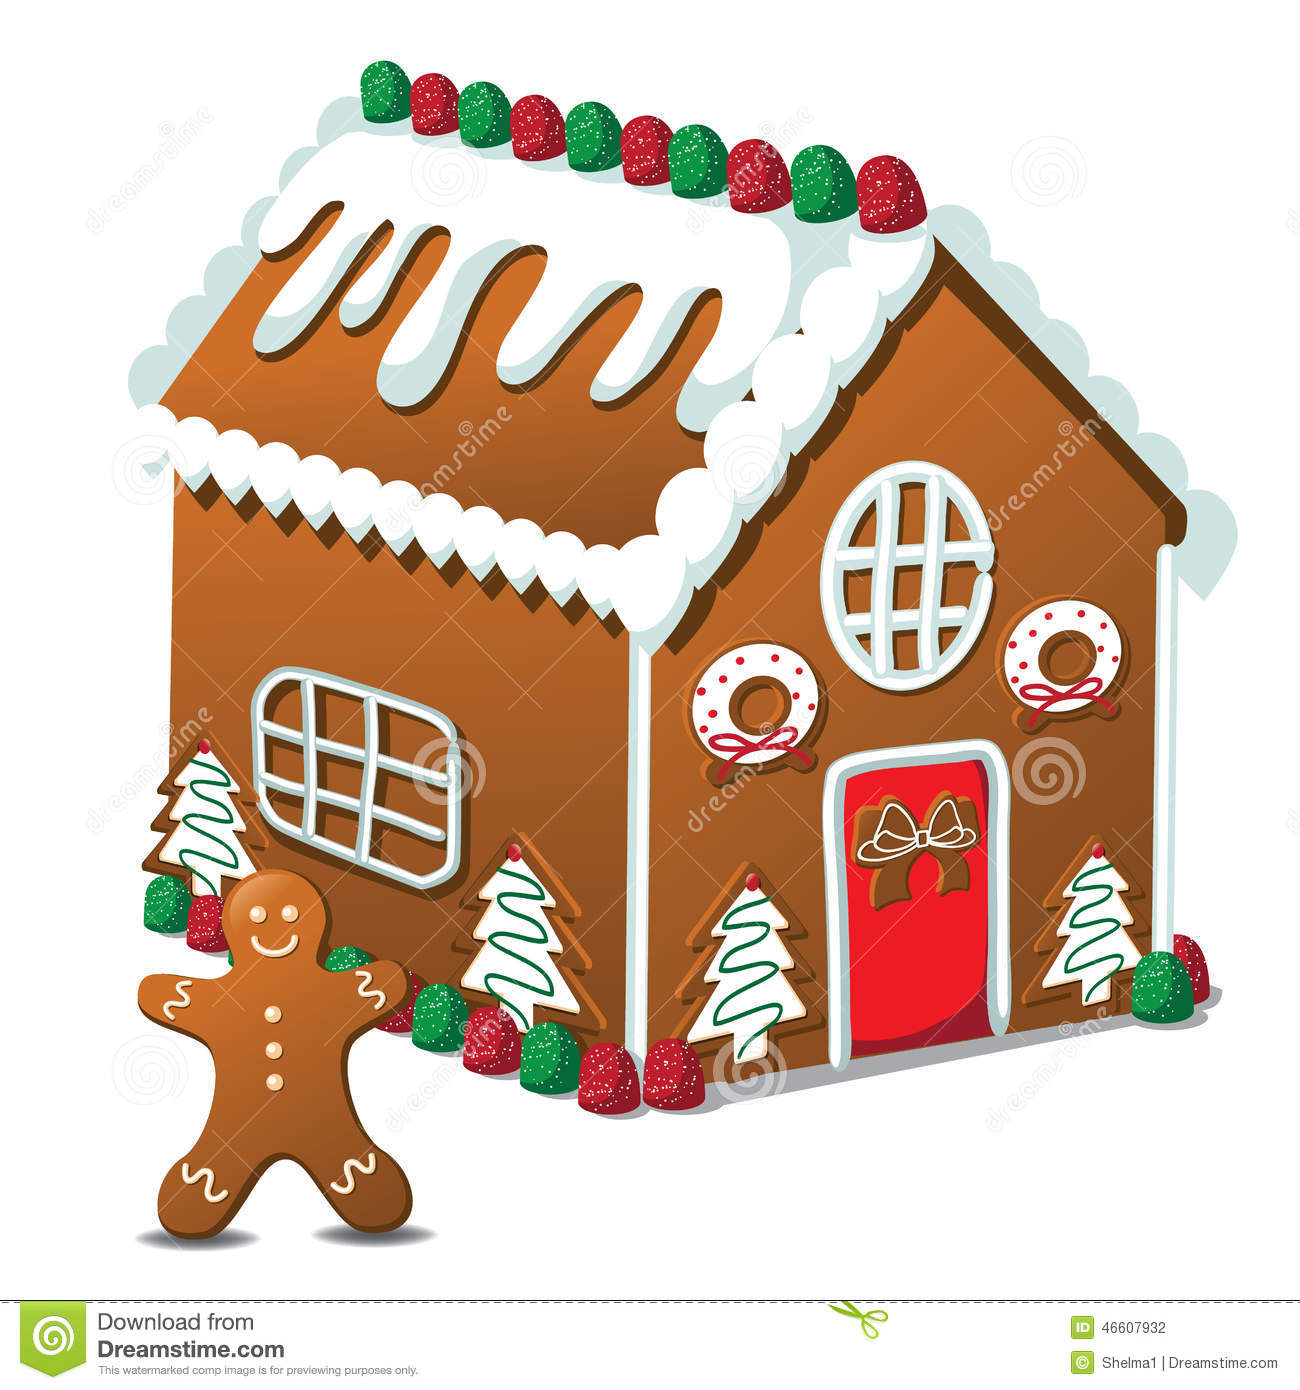 Gingerbread House And Gingerbread Man Stock Vector - Image: 46607932